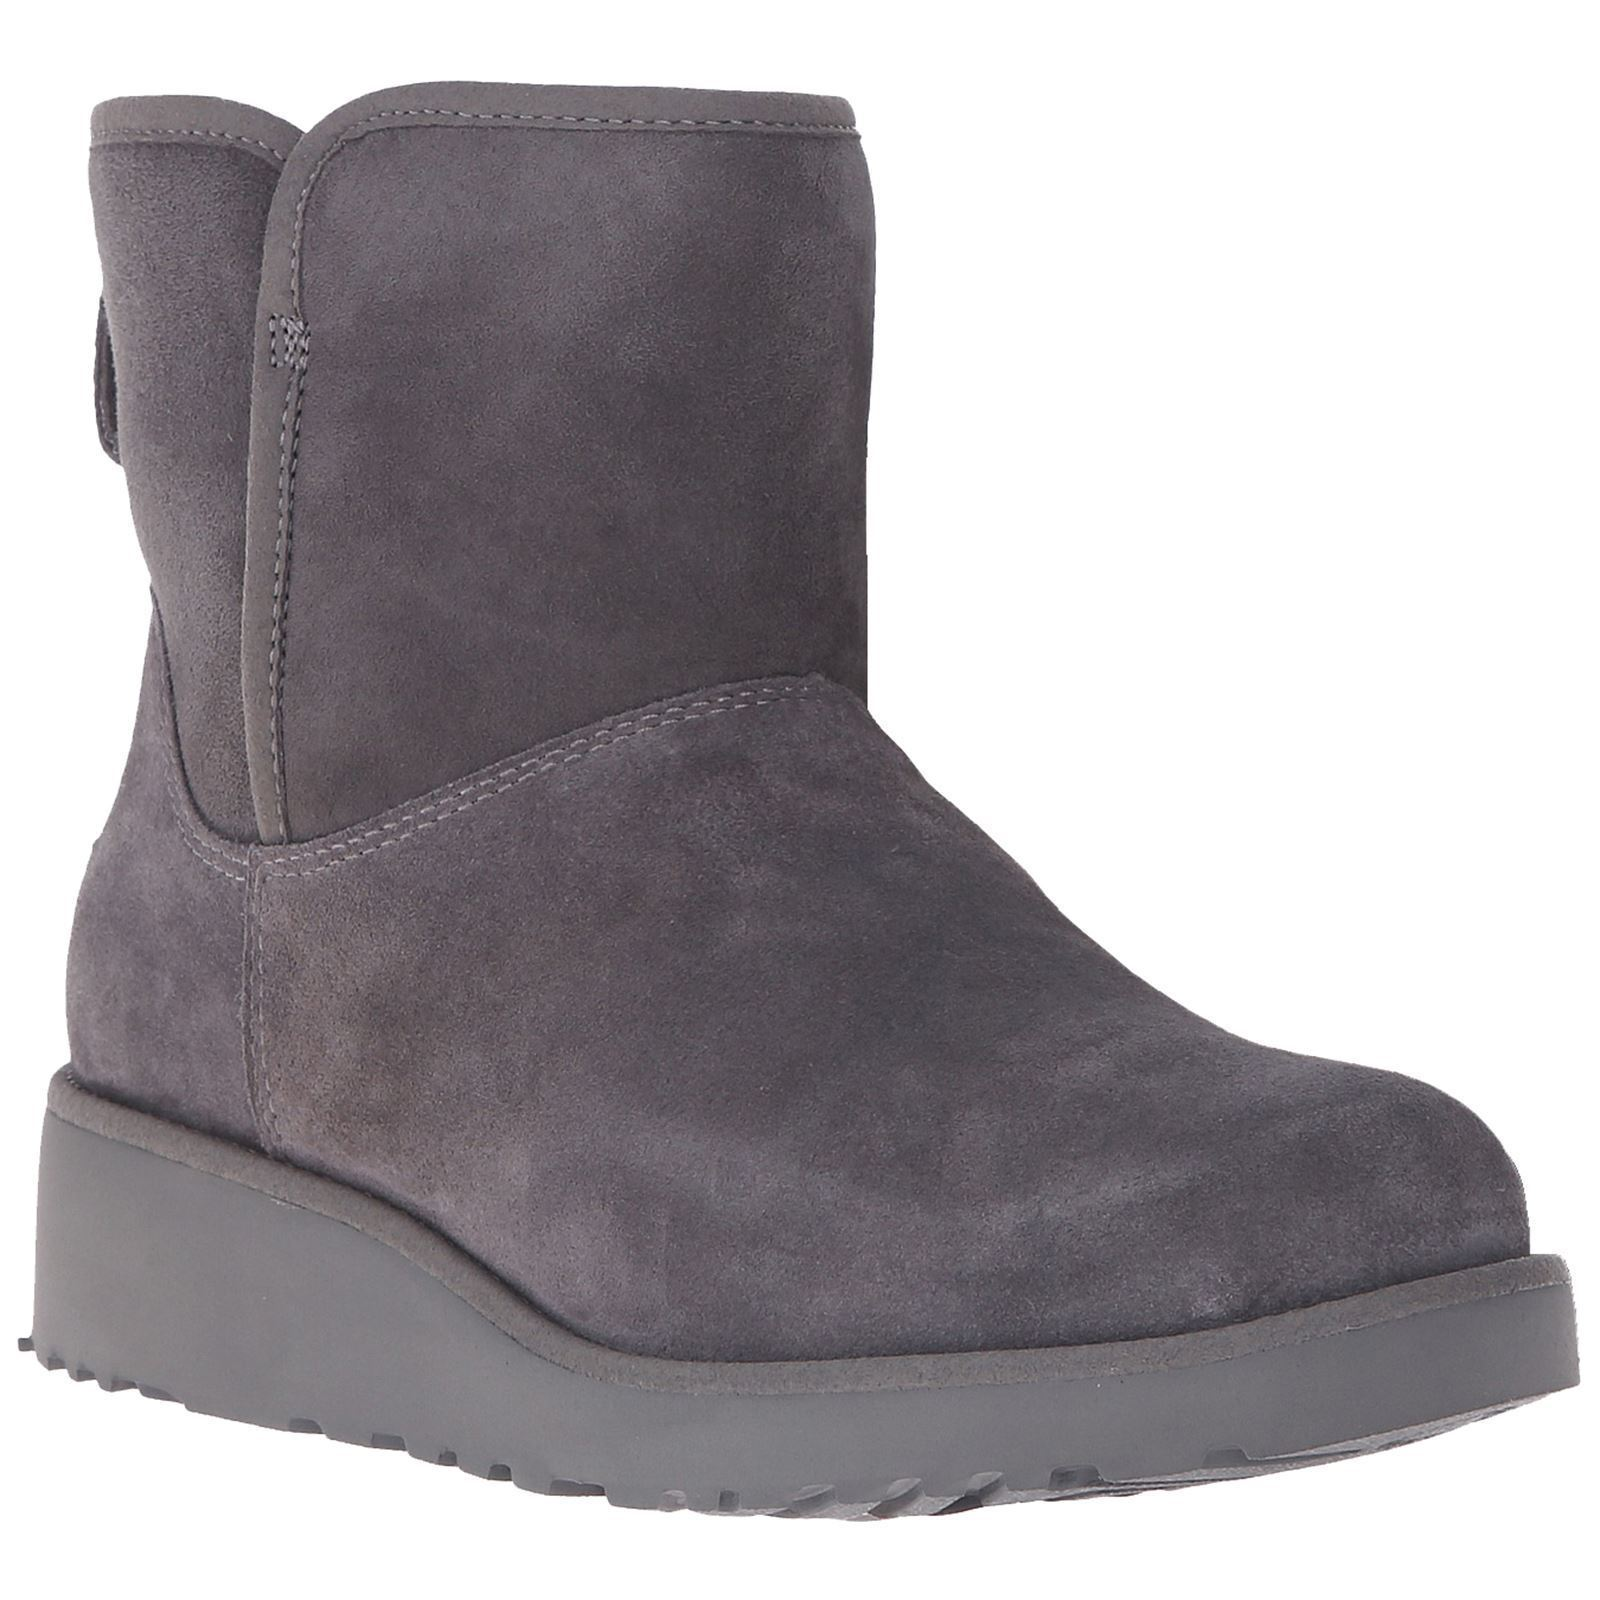 UGG Women's Grey Suede Sheepskin Kristin Treadlite Snow Winter Boots New in Box